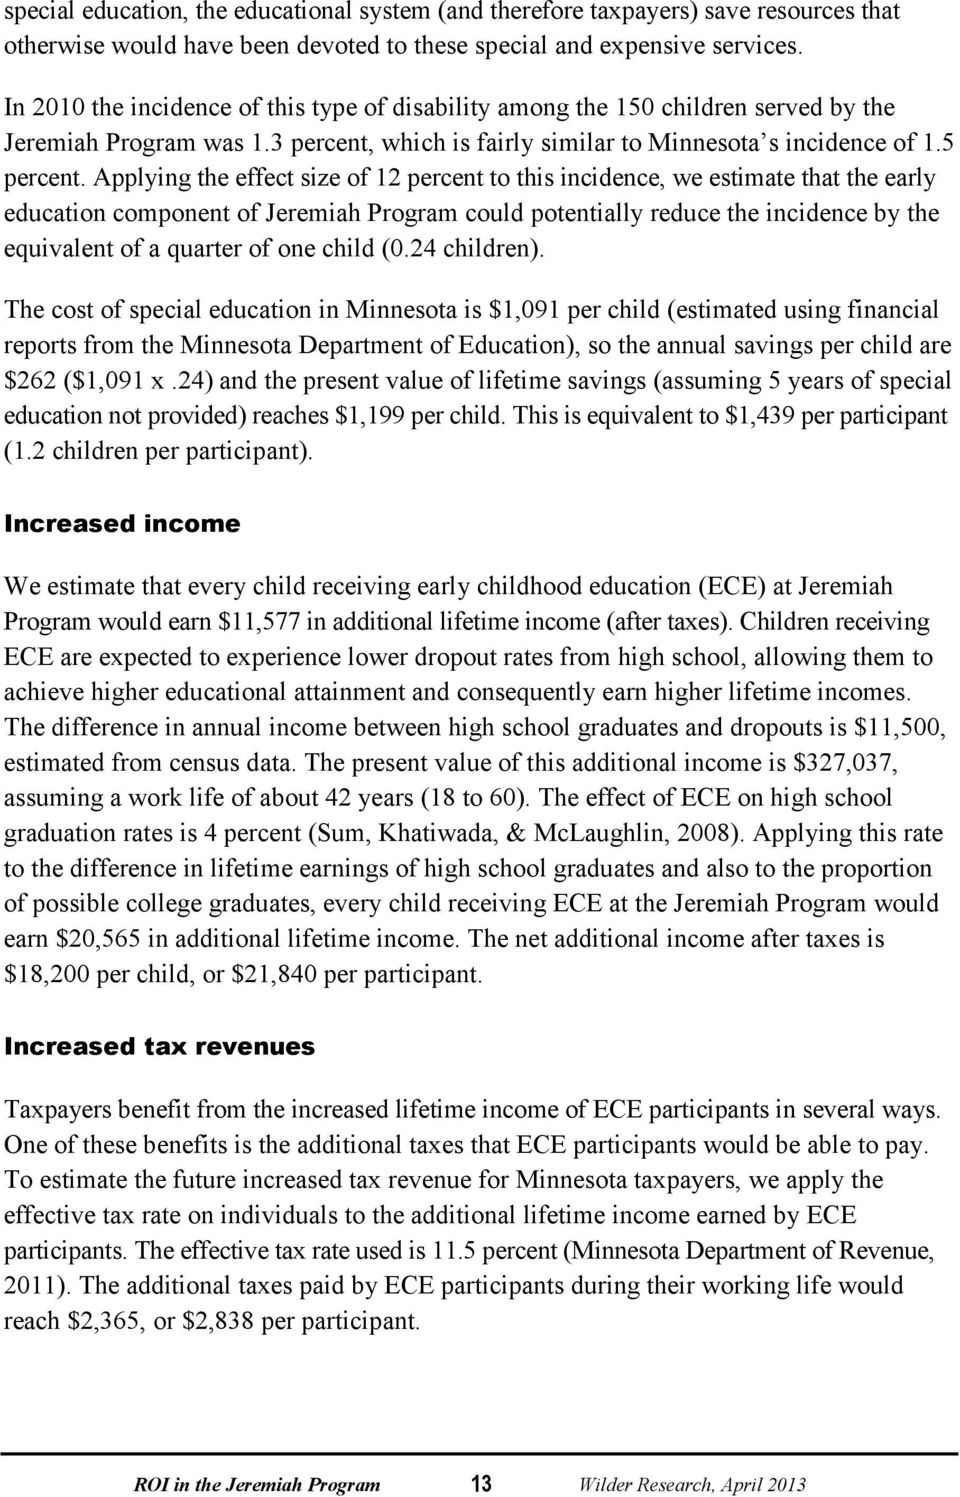 Applying the effect size of 12 percent to this incidence, we estimate that the early education component of Jeremiah Program could potentially reduce the incidence by the equivalent of a quarter of